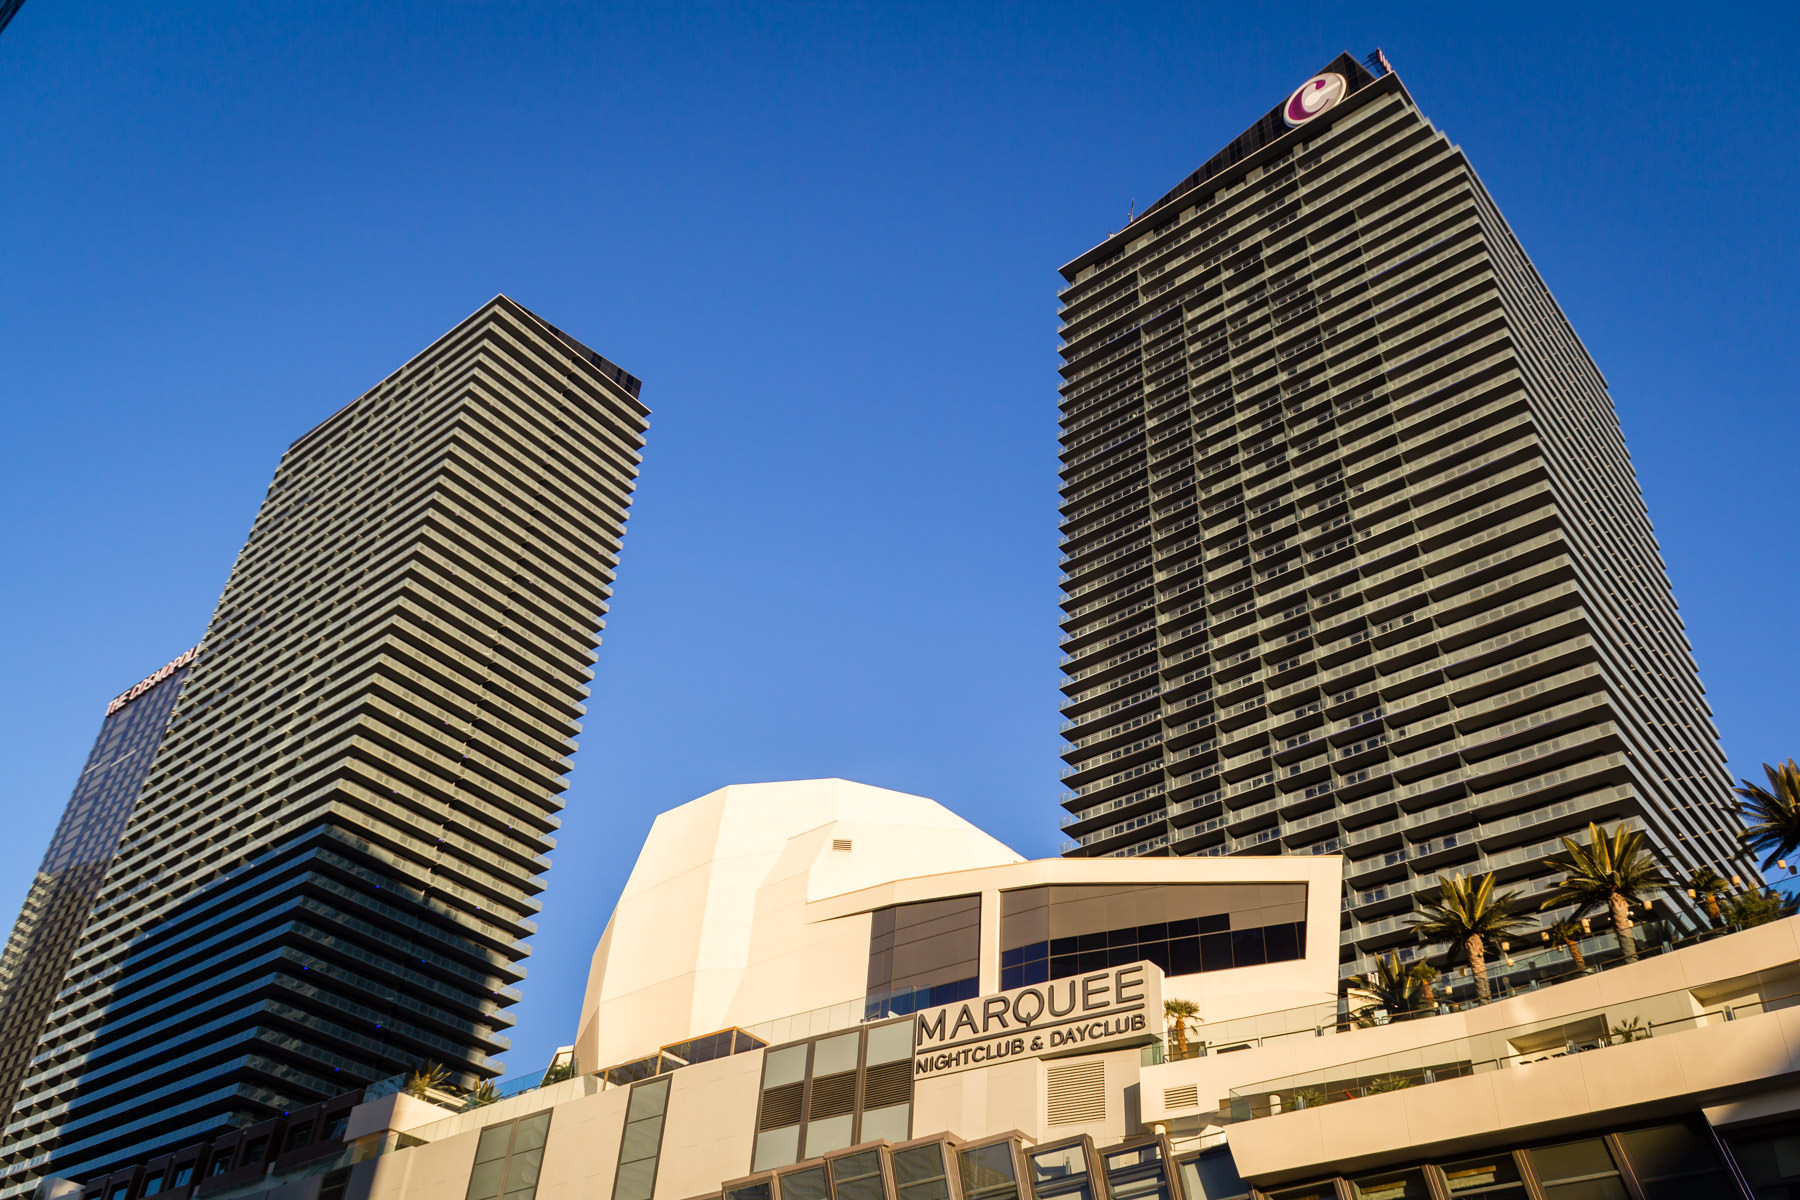 The two towers of the Cosmopolitan of Las Vegas Hotel and Casino, Las Vegas.